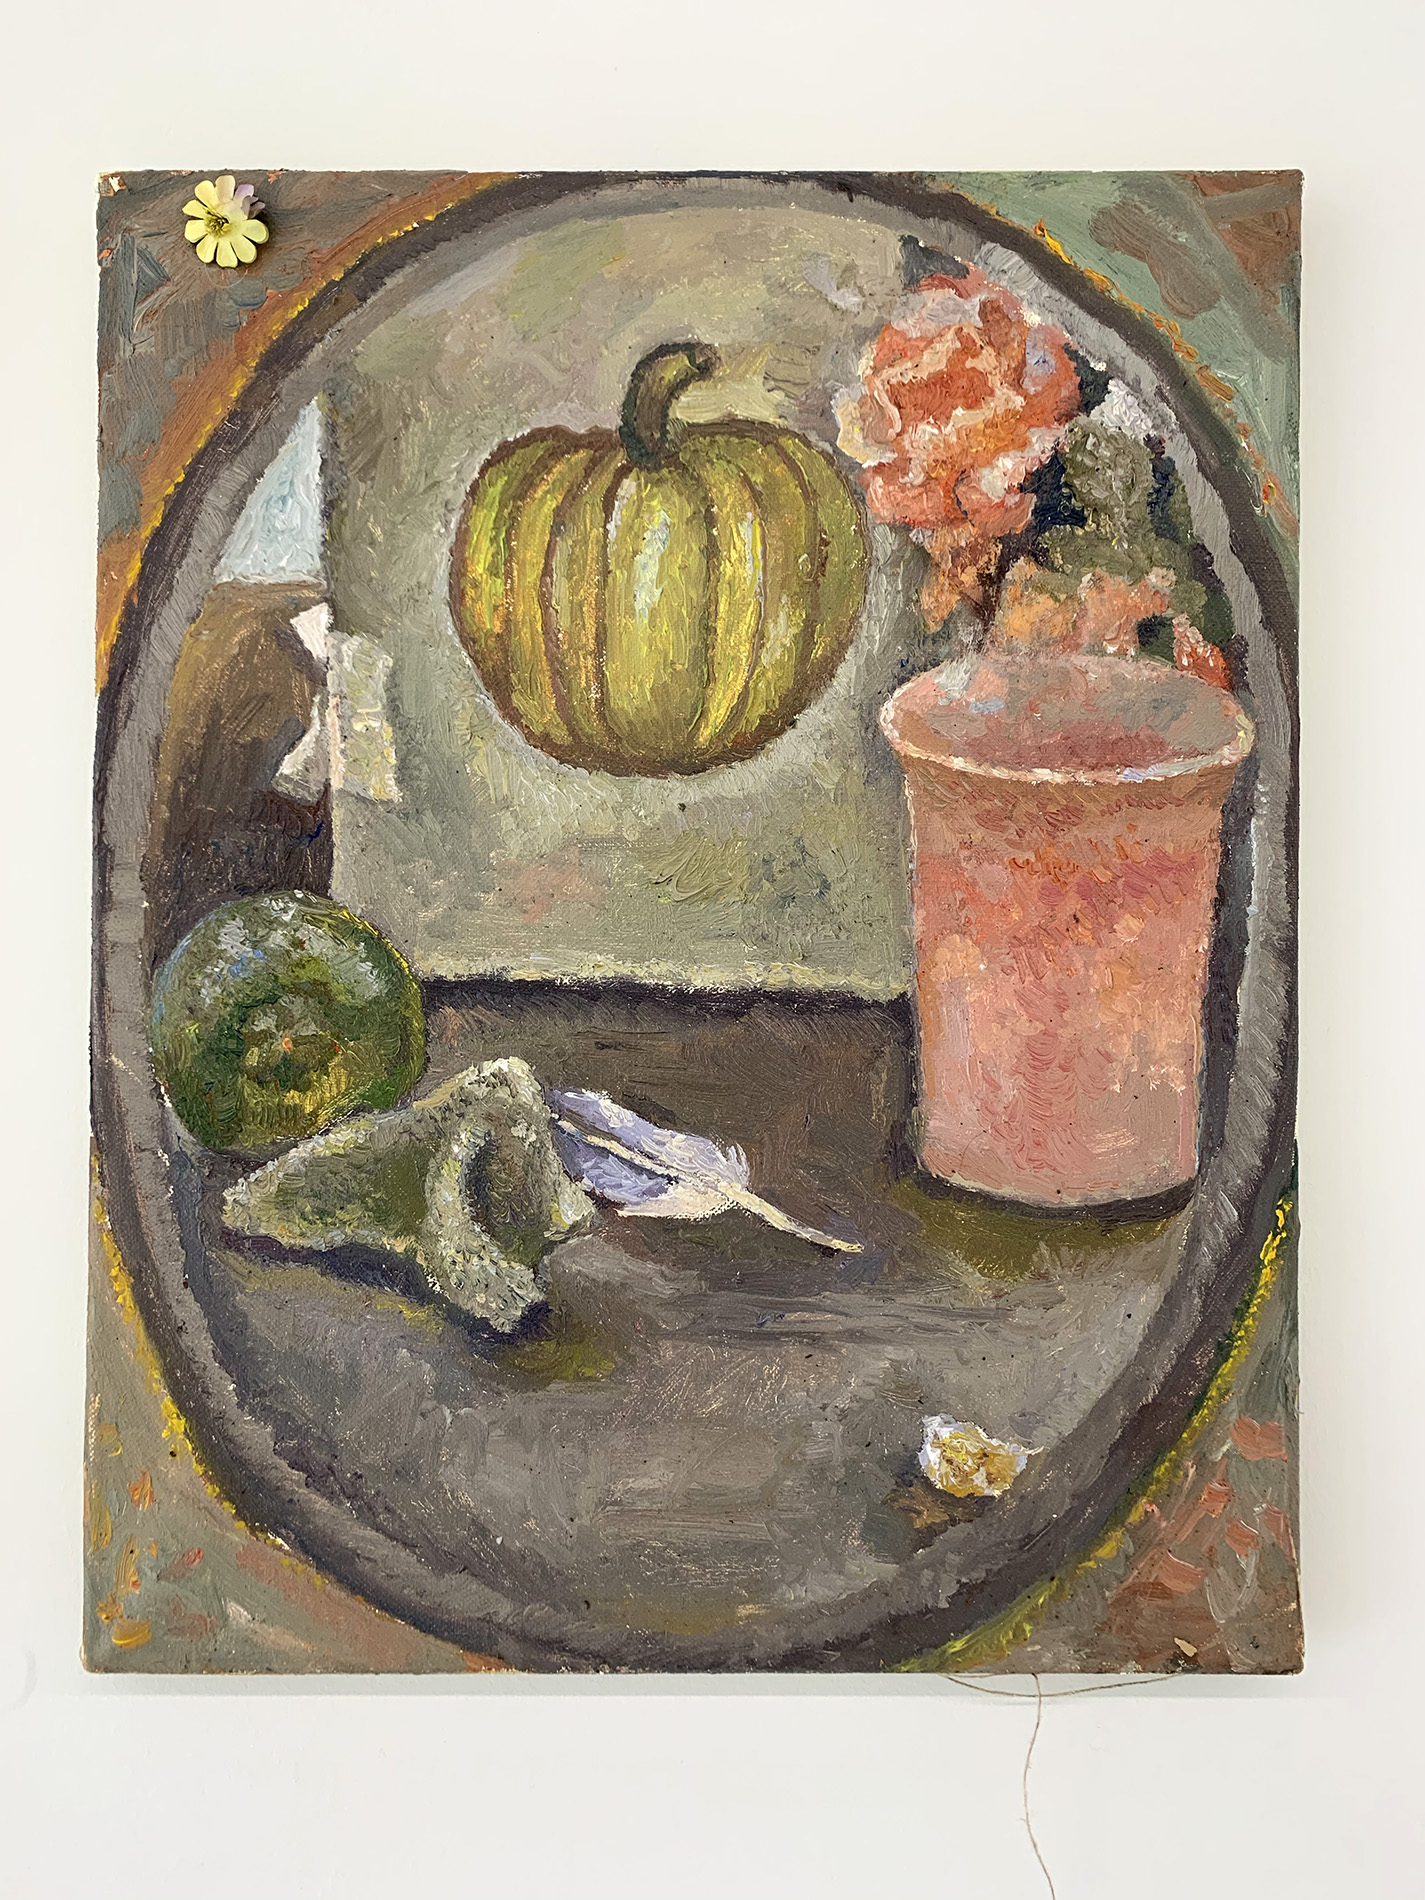 Redemption Song | Yingfei Li - Still Life with plastic cup 2021